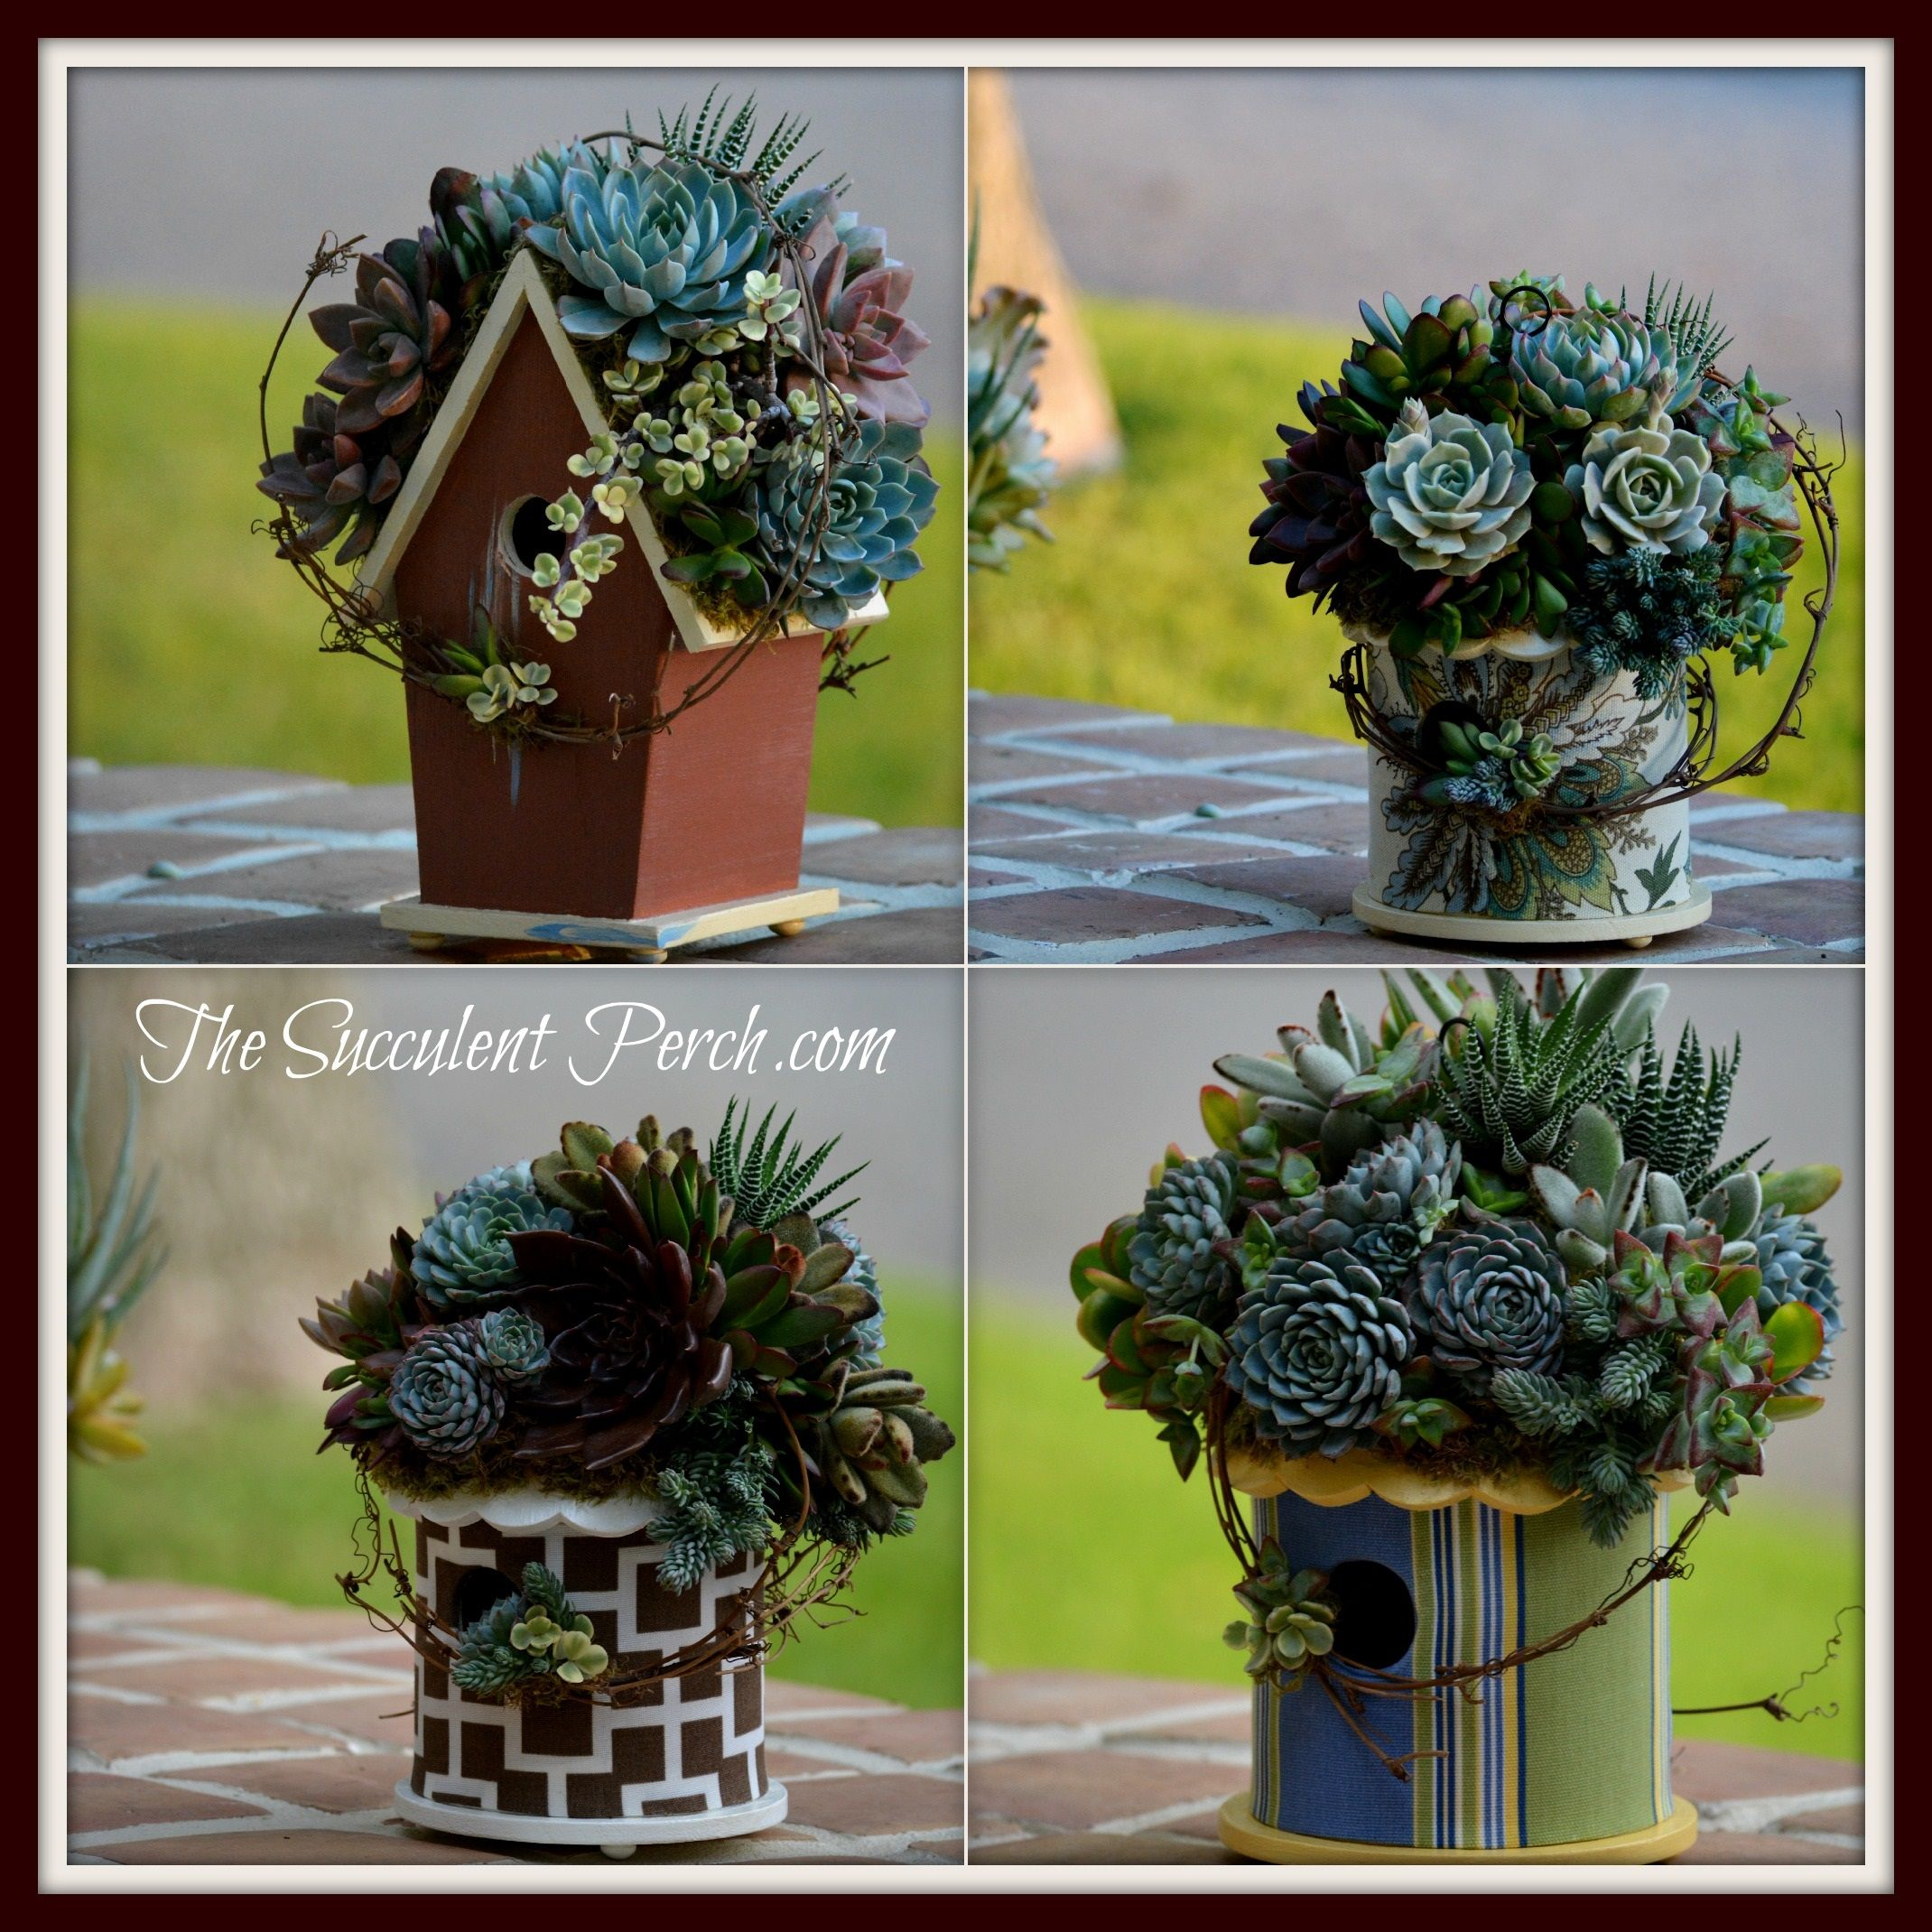 A few of the Succulent Rooftop Birdhouses shipped out throughout the Continental US for Christmas gifts~ www.thesucculentperch.com